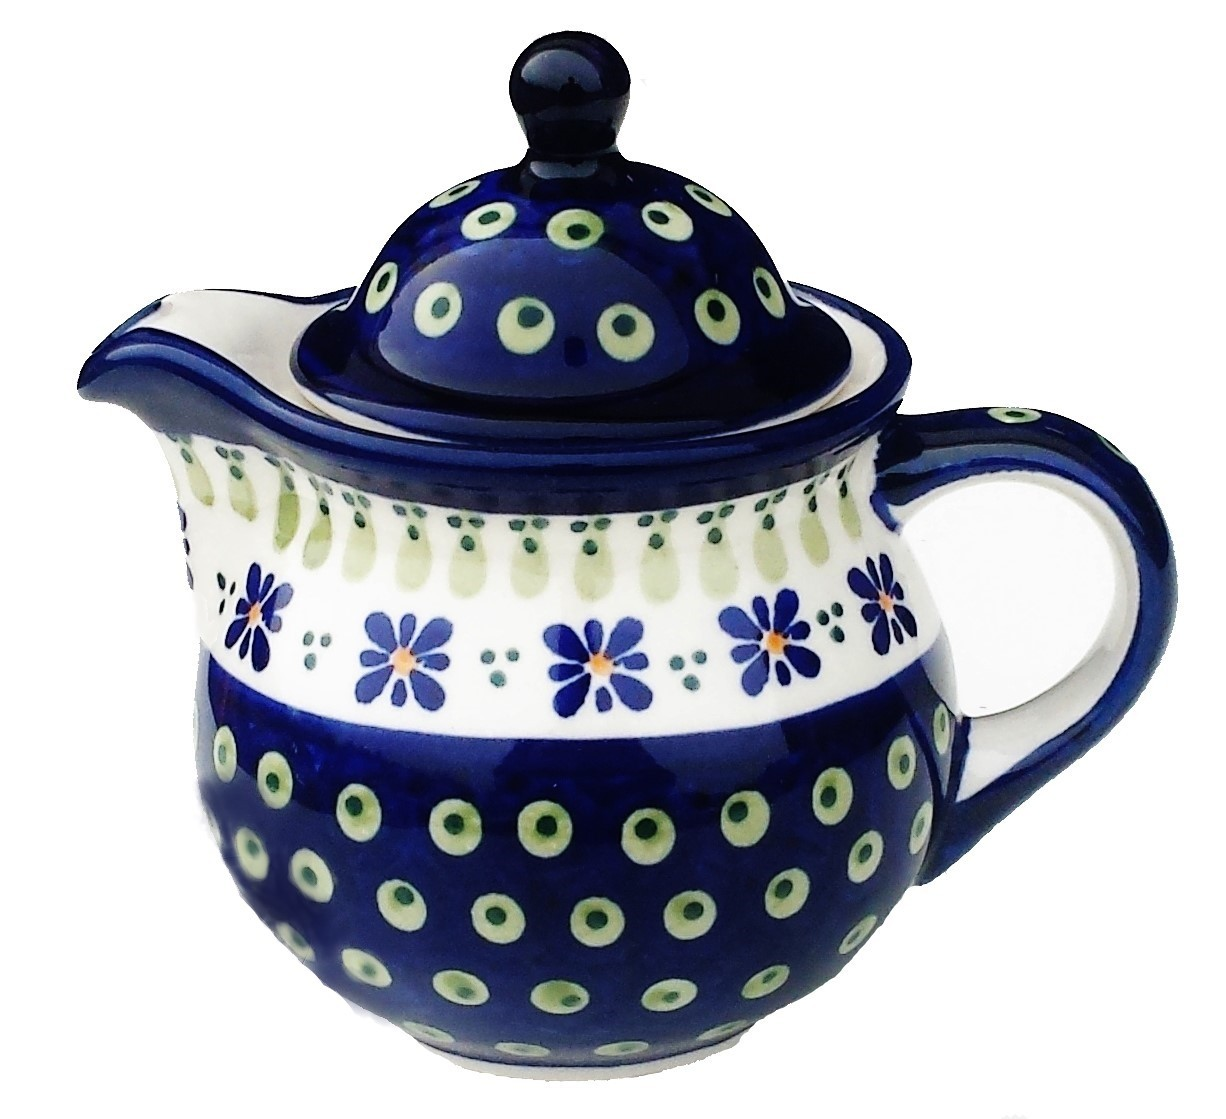 Polish Stoneware Personal 10oz Stoneware Teapot - 1113-296A Drops of Joy